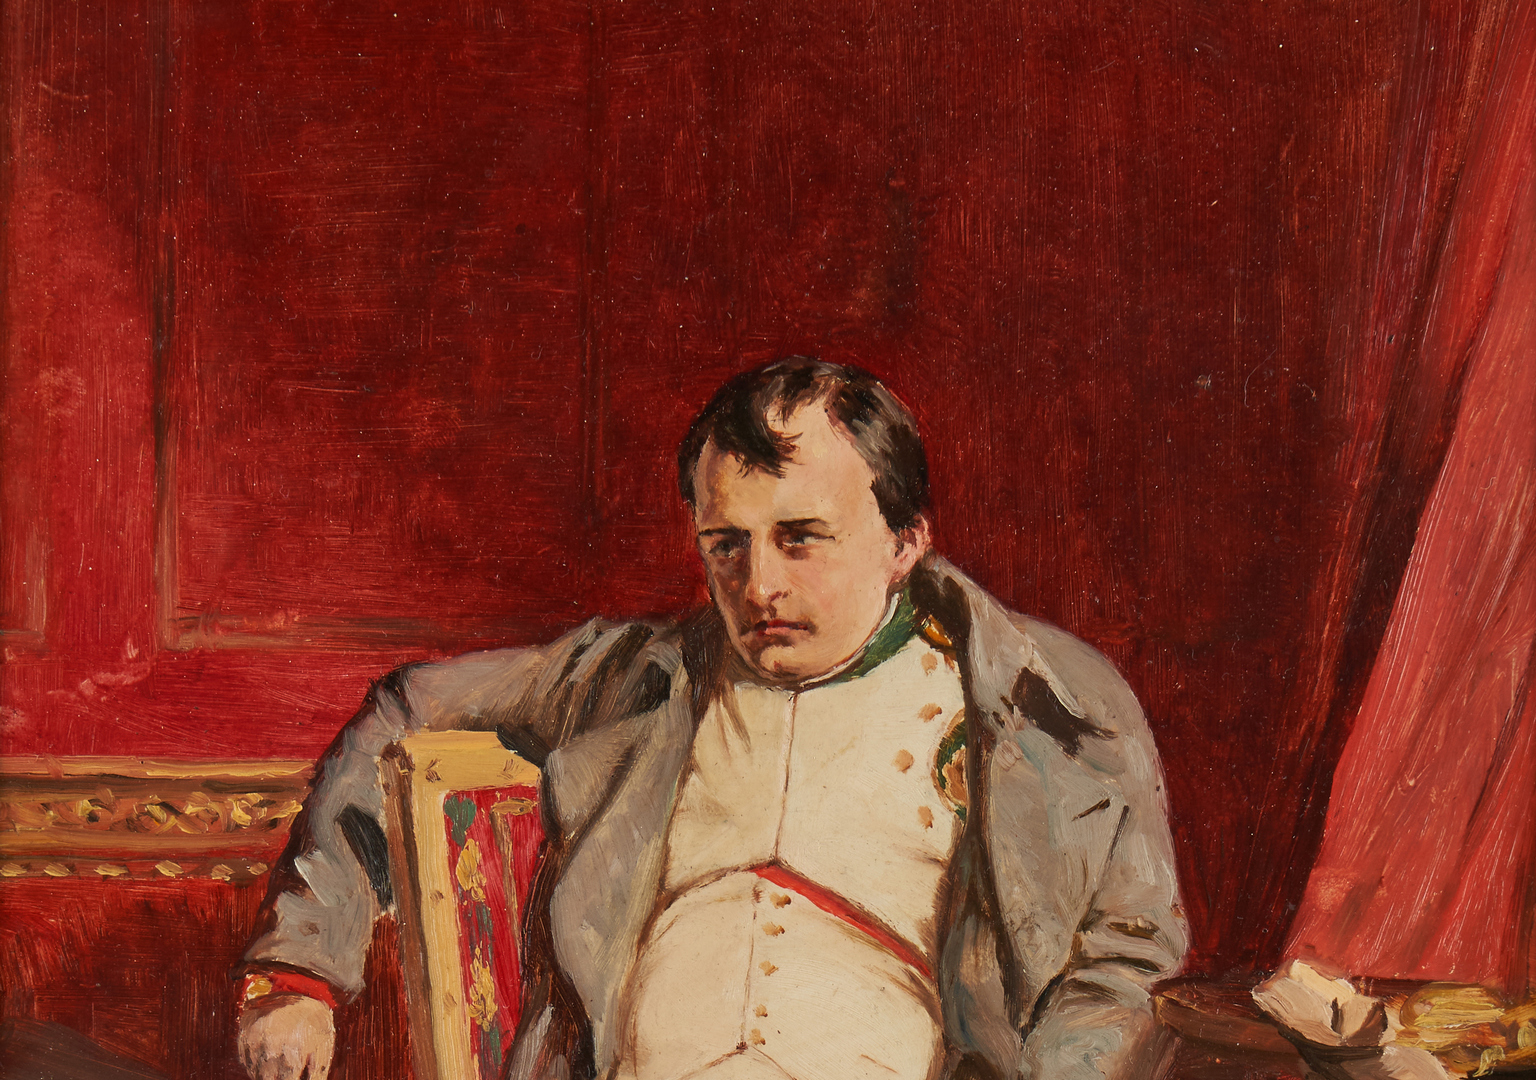 Lot 310: Painting and Print of Napoleon, after Delaroche